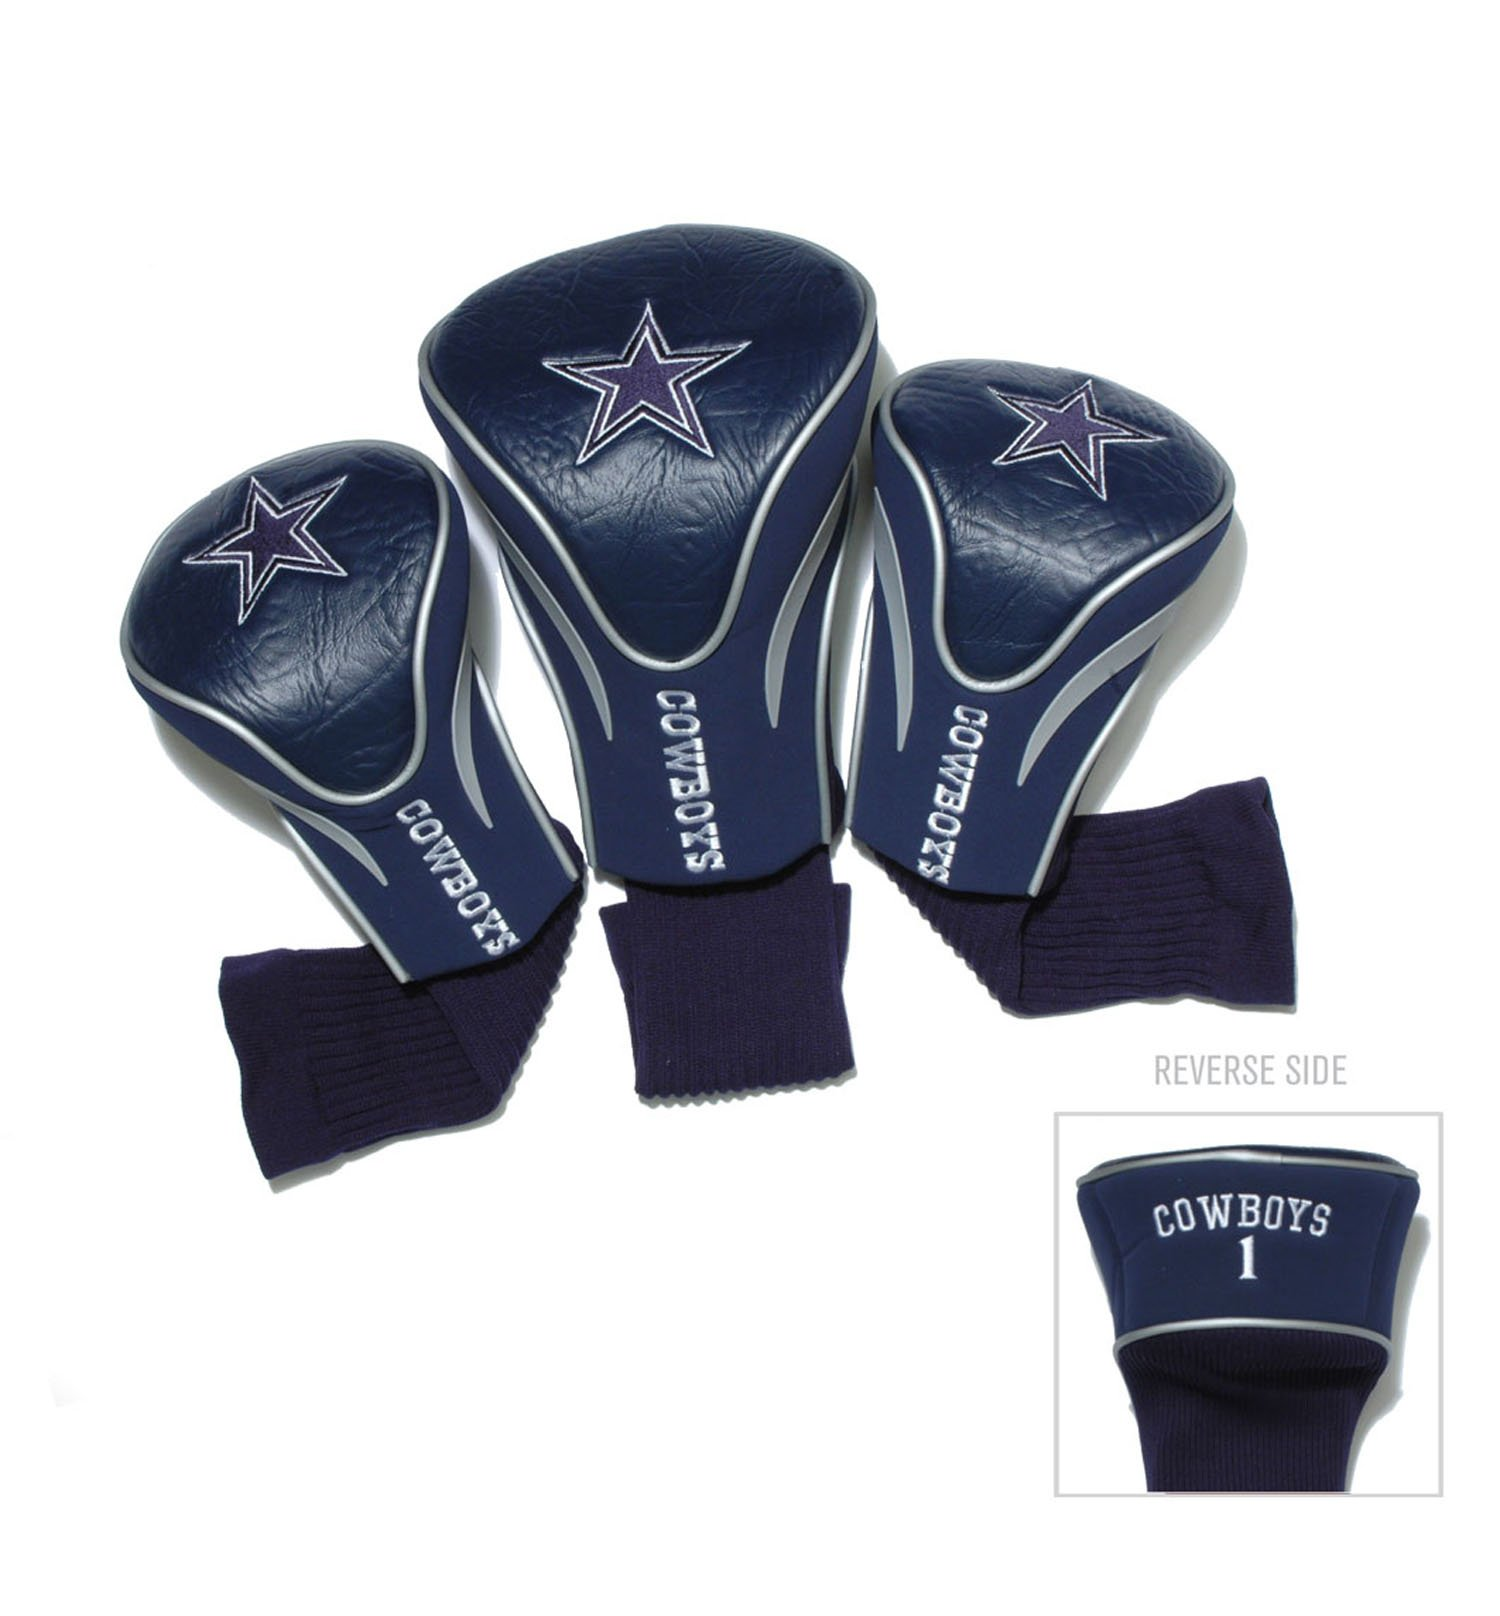 Team Golf NFL Dallas Cowboys Contour Golf Club Headcovers (3 Count), Numbered 1, 3, & X, Fits Oversized Drivers, Utility, Rescue & Fairway Clubs, Velour lined for Extra Club Protection